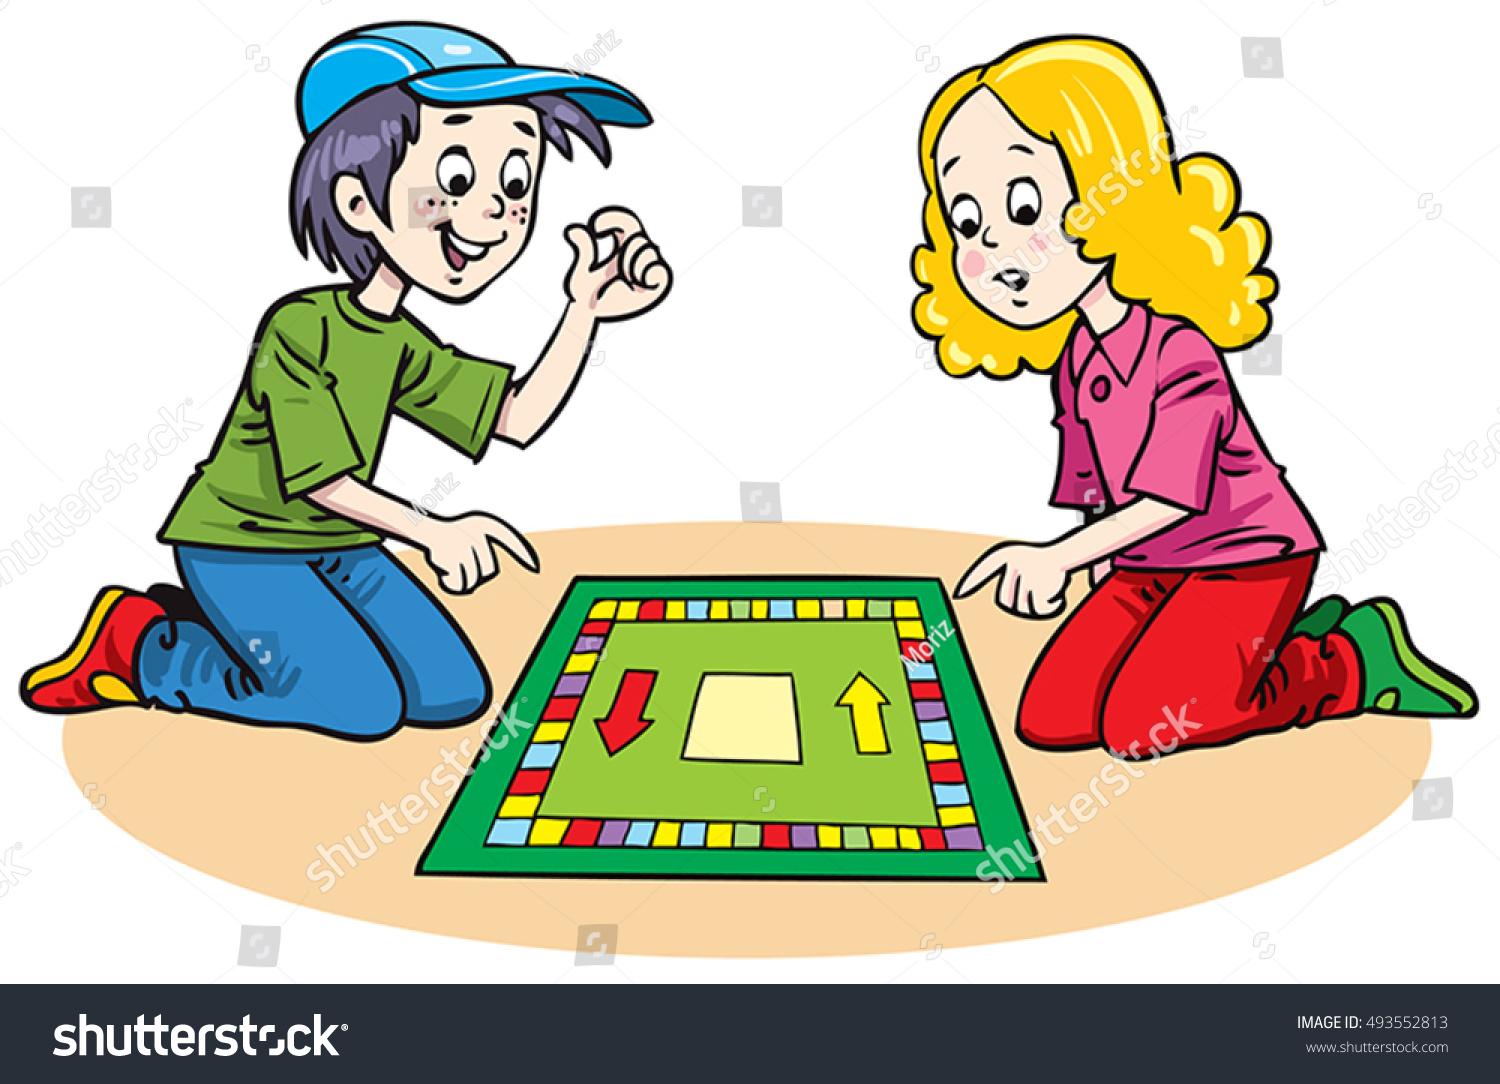 Playing Board Games Clipart.